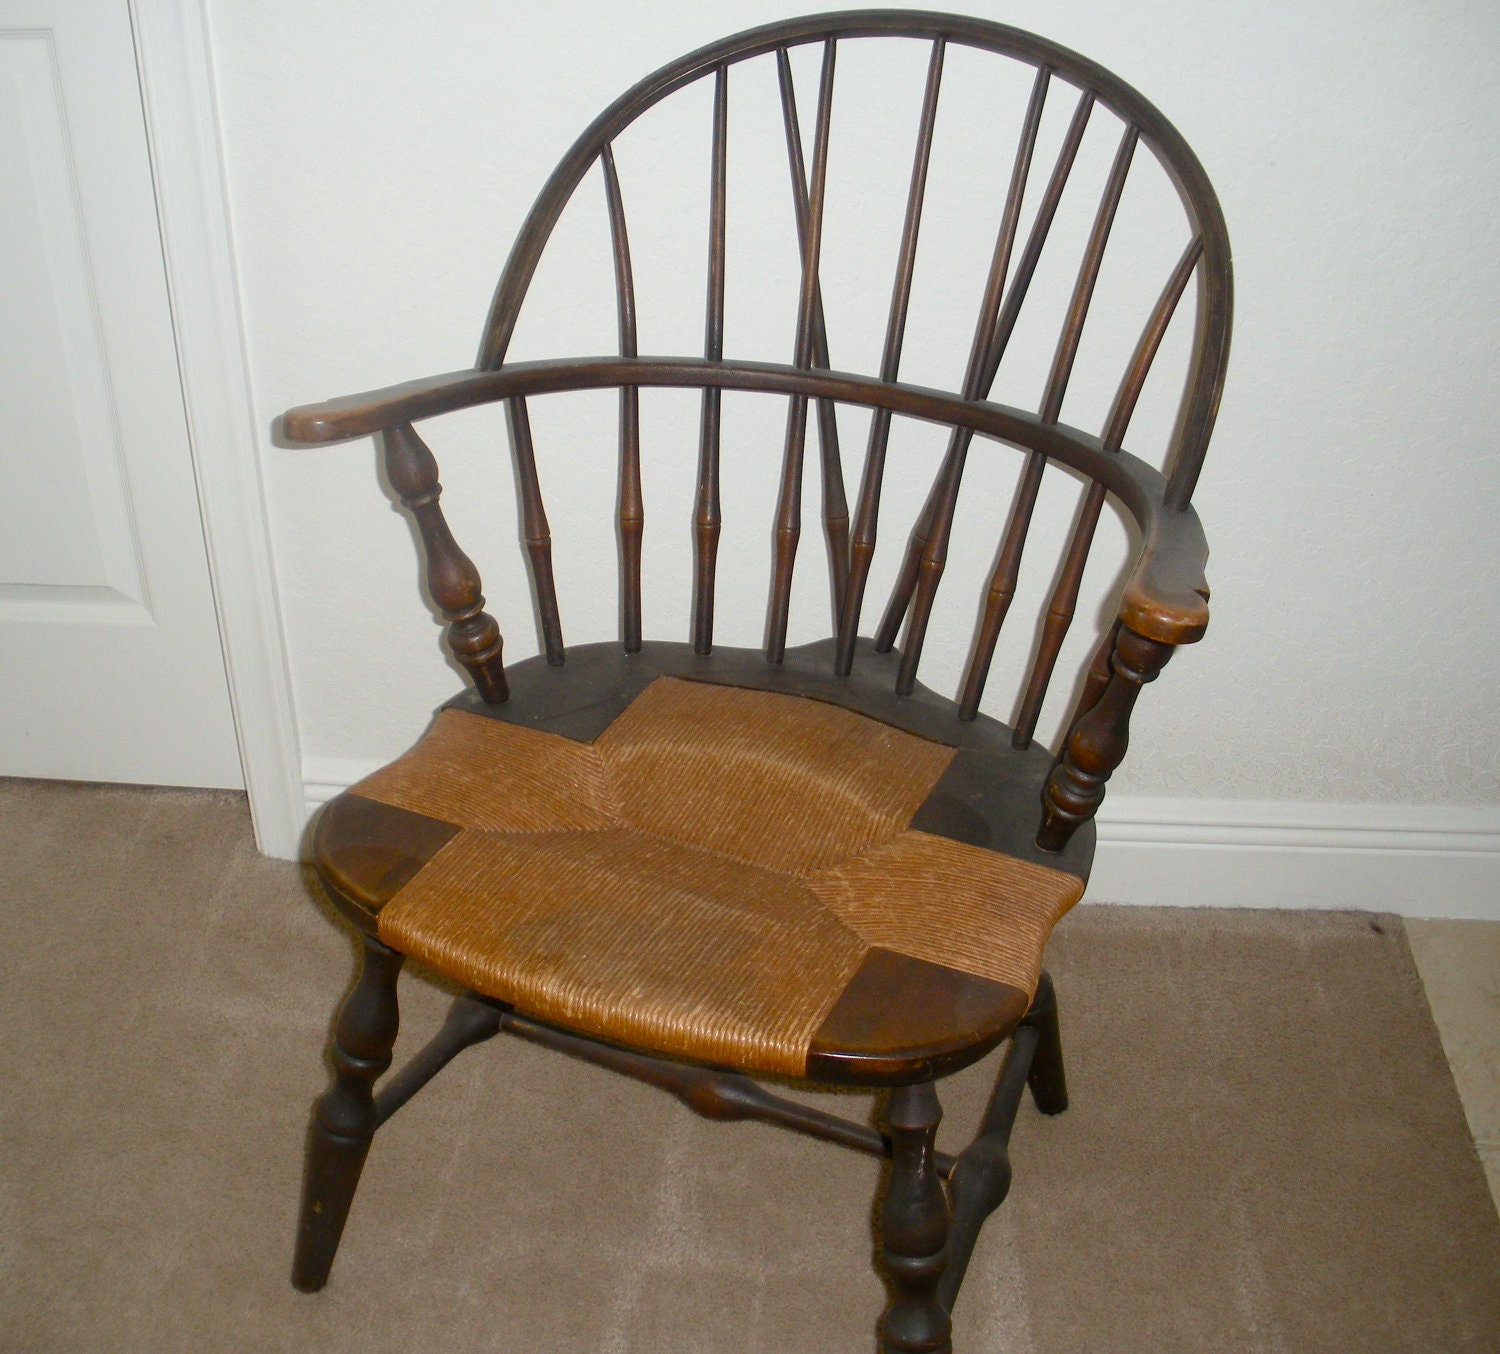 Markovicharts » Antique Chair - Antique Windsor Chairs For Sale Antique  Furniture - Antique Windsor Rocking - Windsor Chairs Antique Antique Furniture